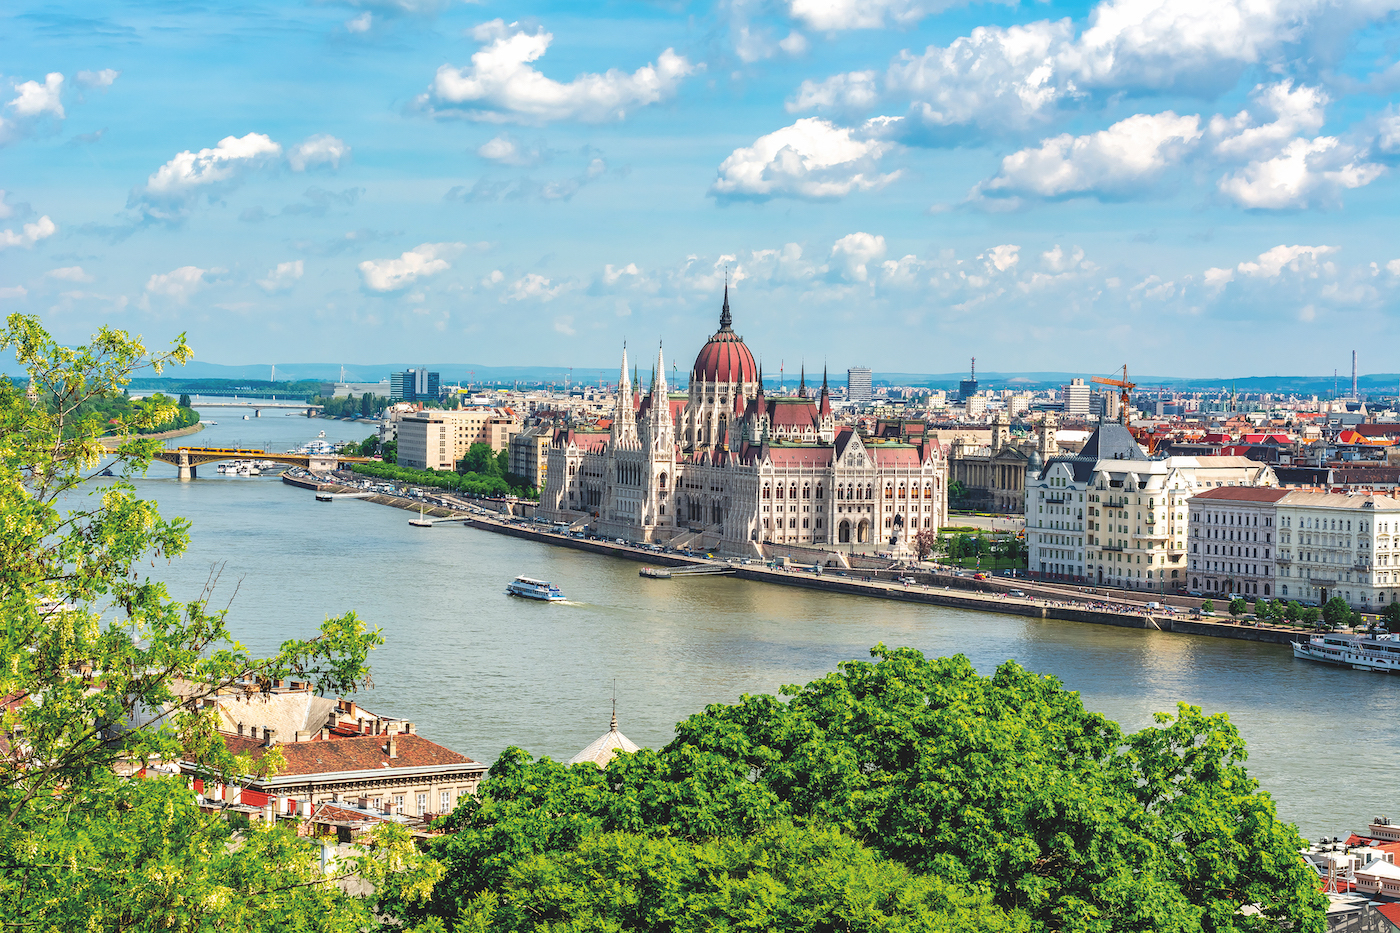 win avalon danube cruise Budapest parliament